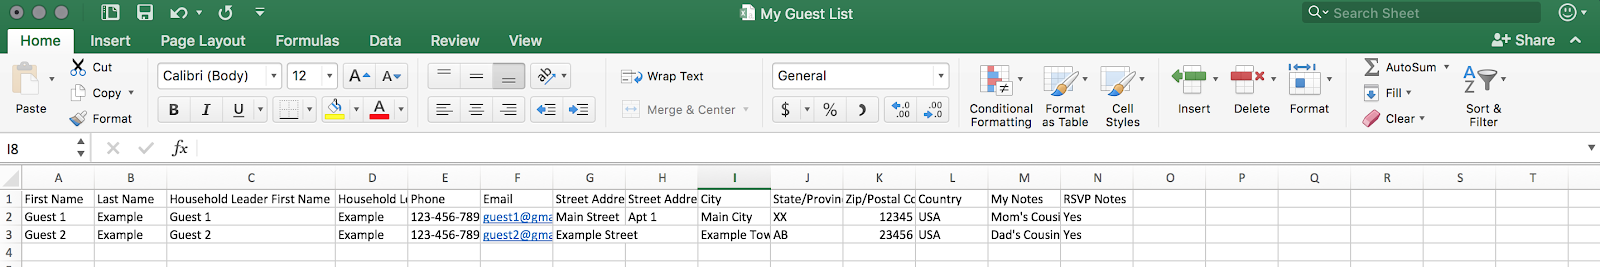 downloaded guest list excel file